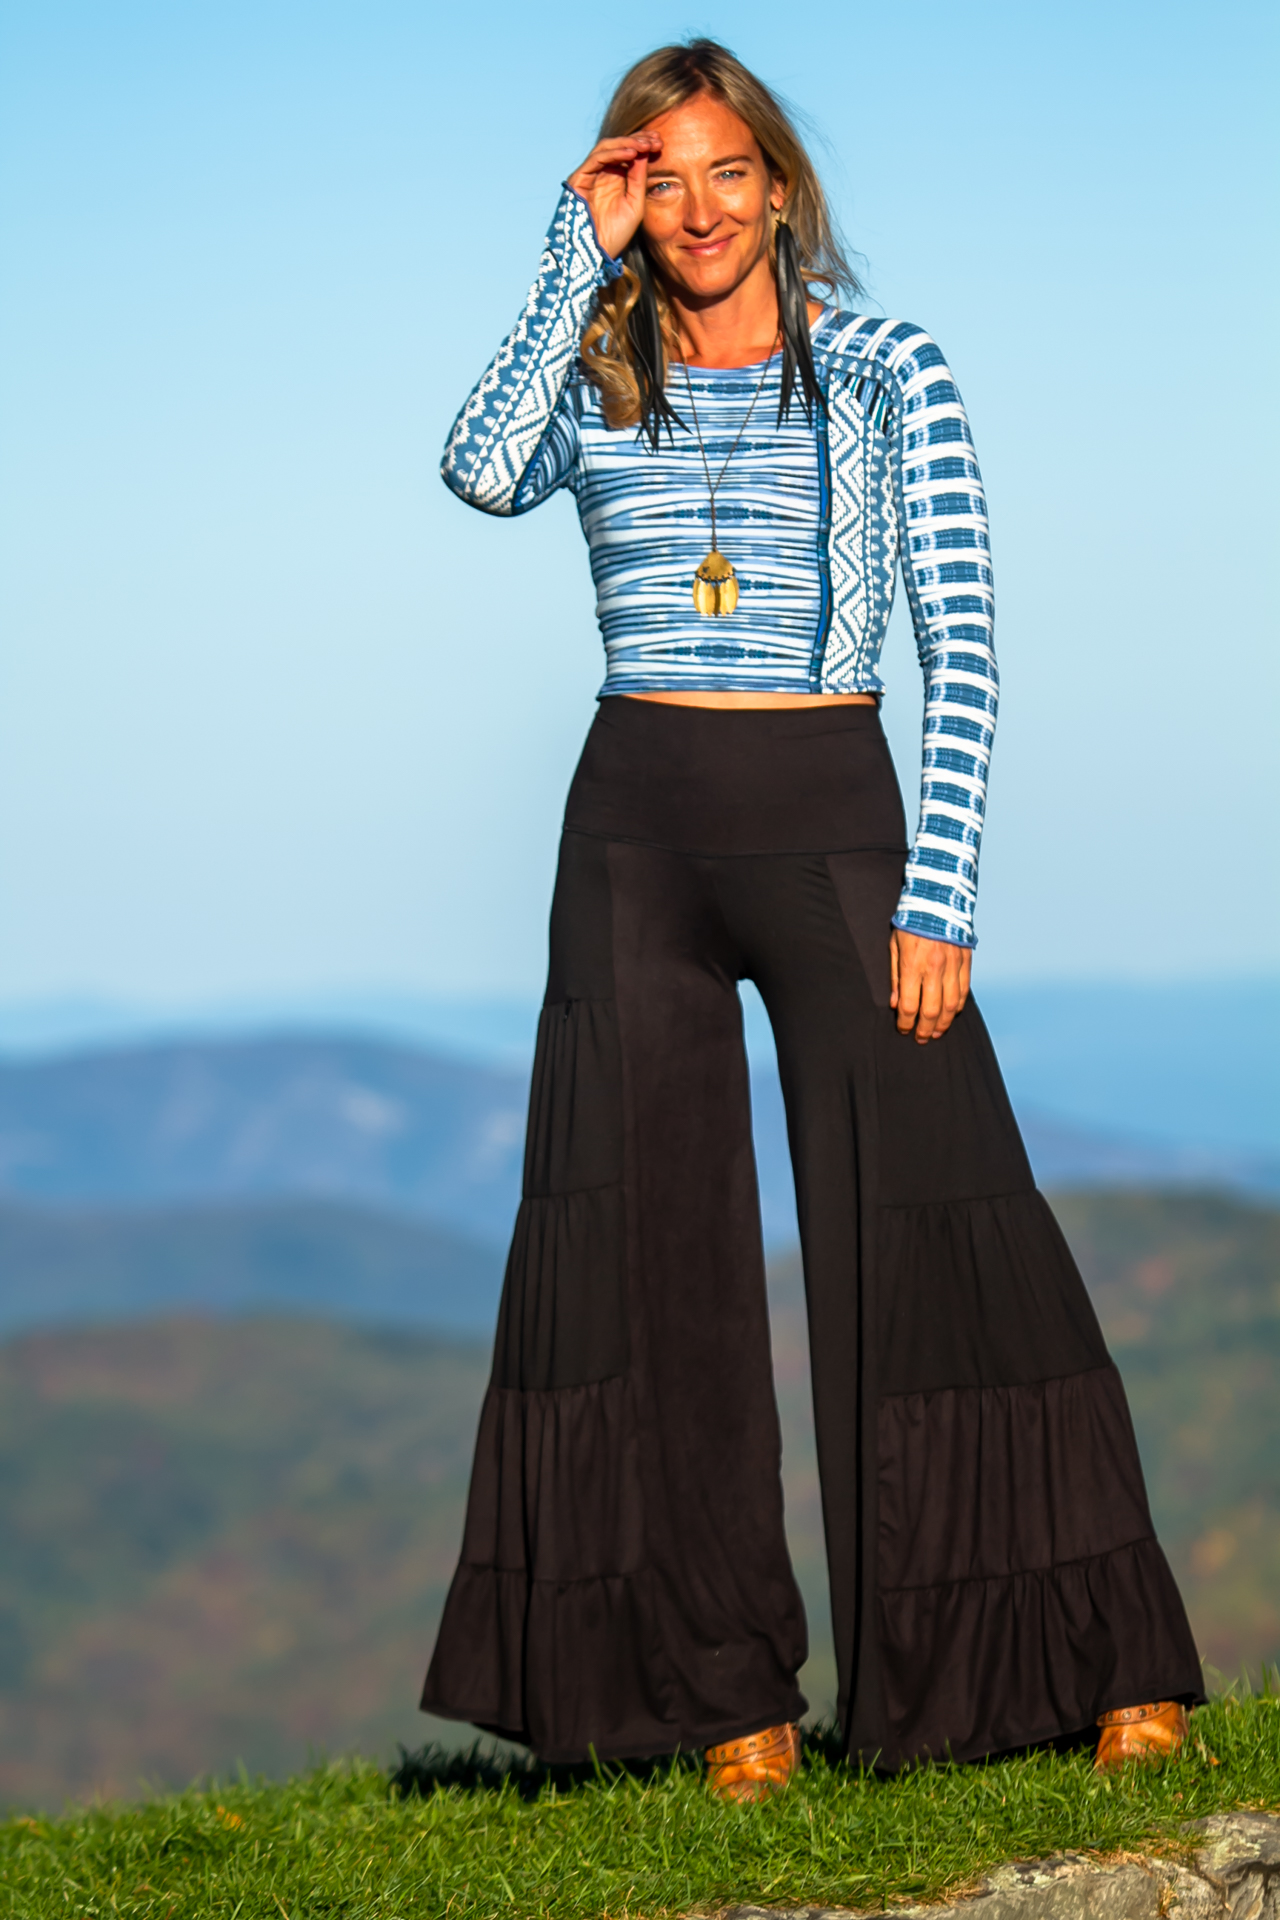 Fashion Design Autumn Teneyl wearing a boho look by Autumn Teneyl Designs featuring a Wide legged black pant with a crop top.